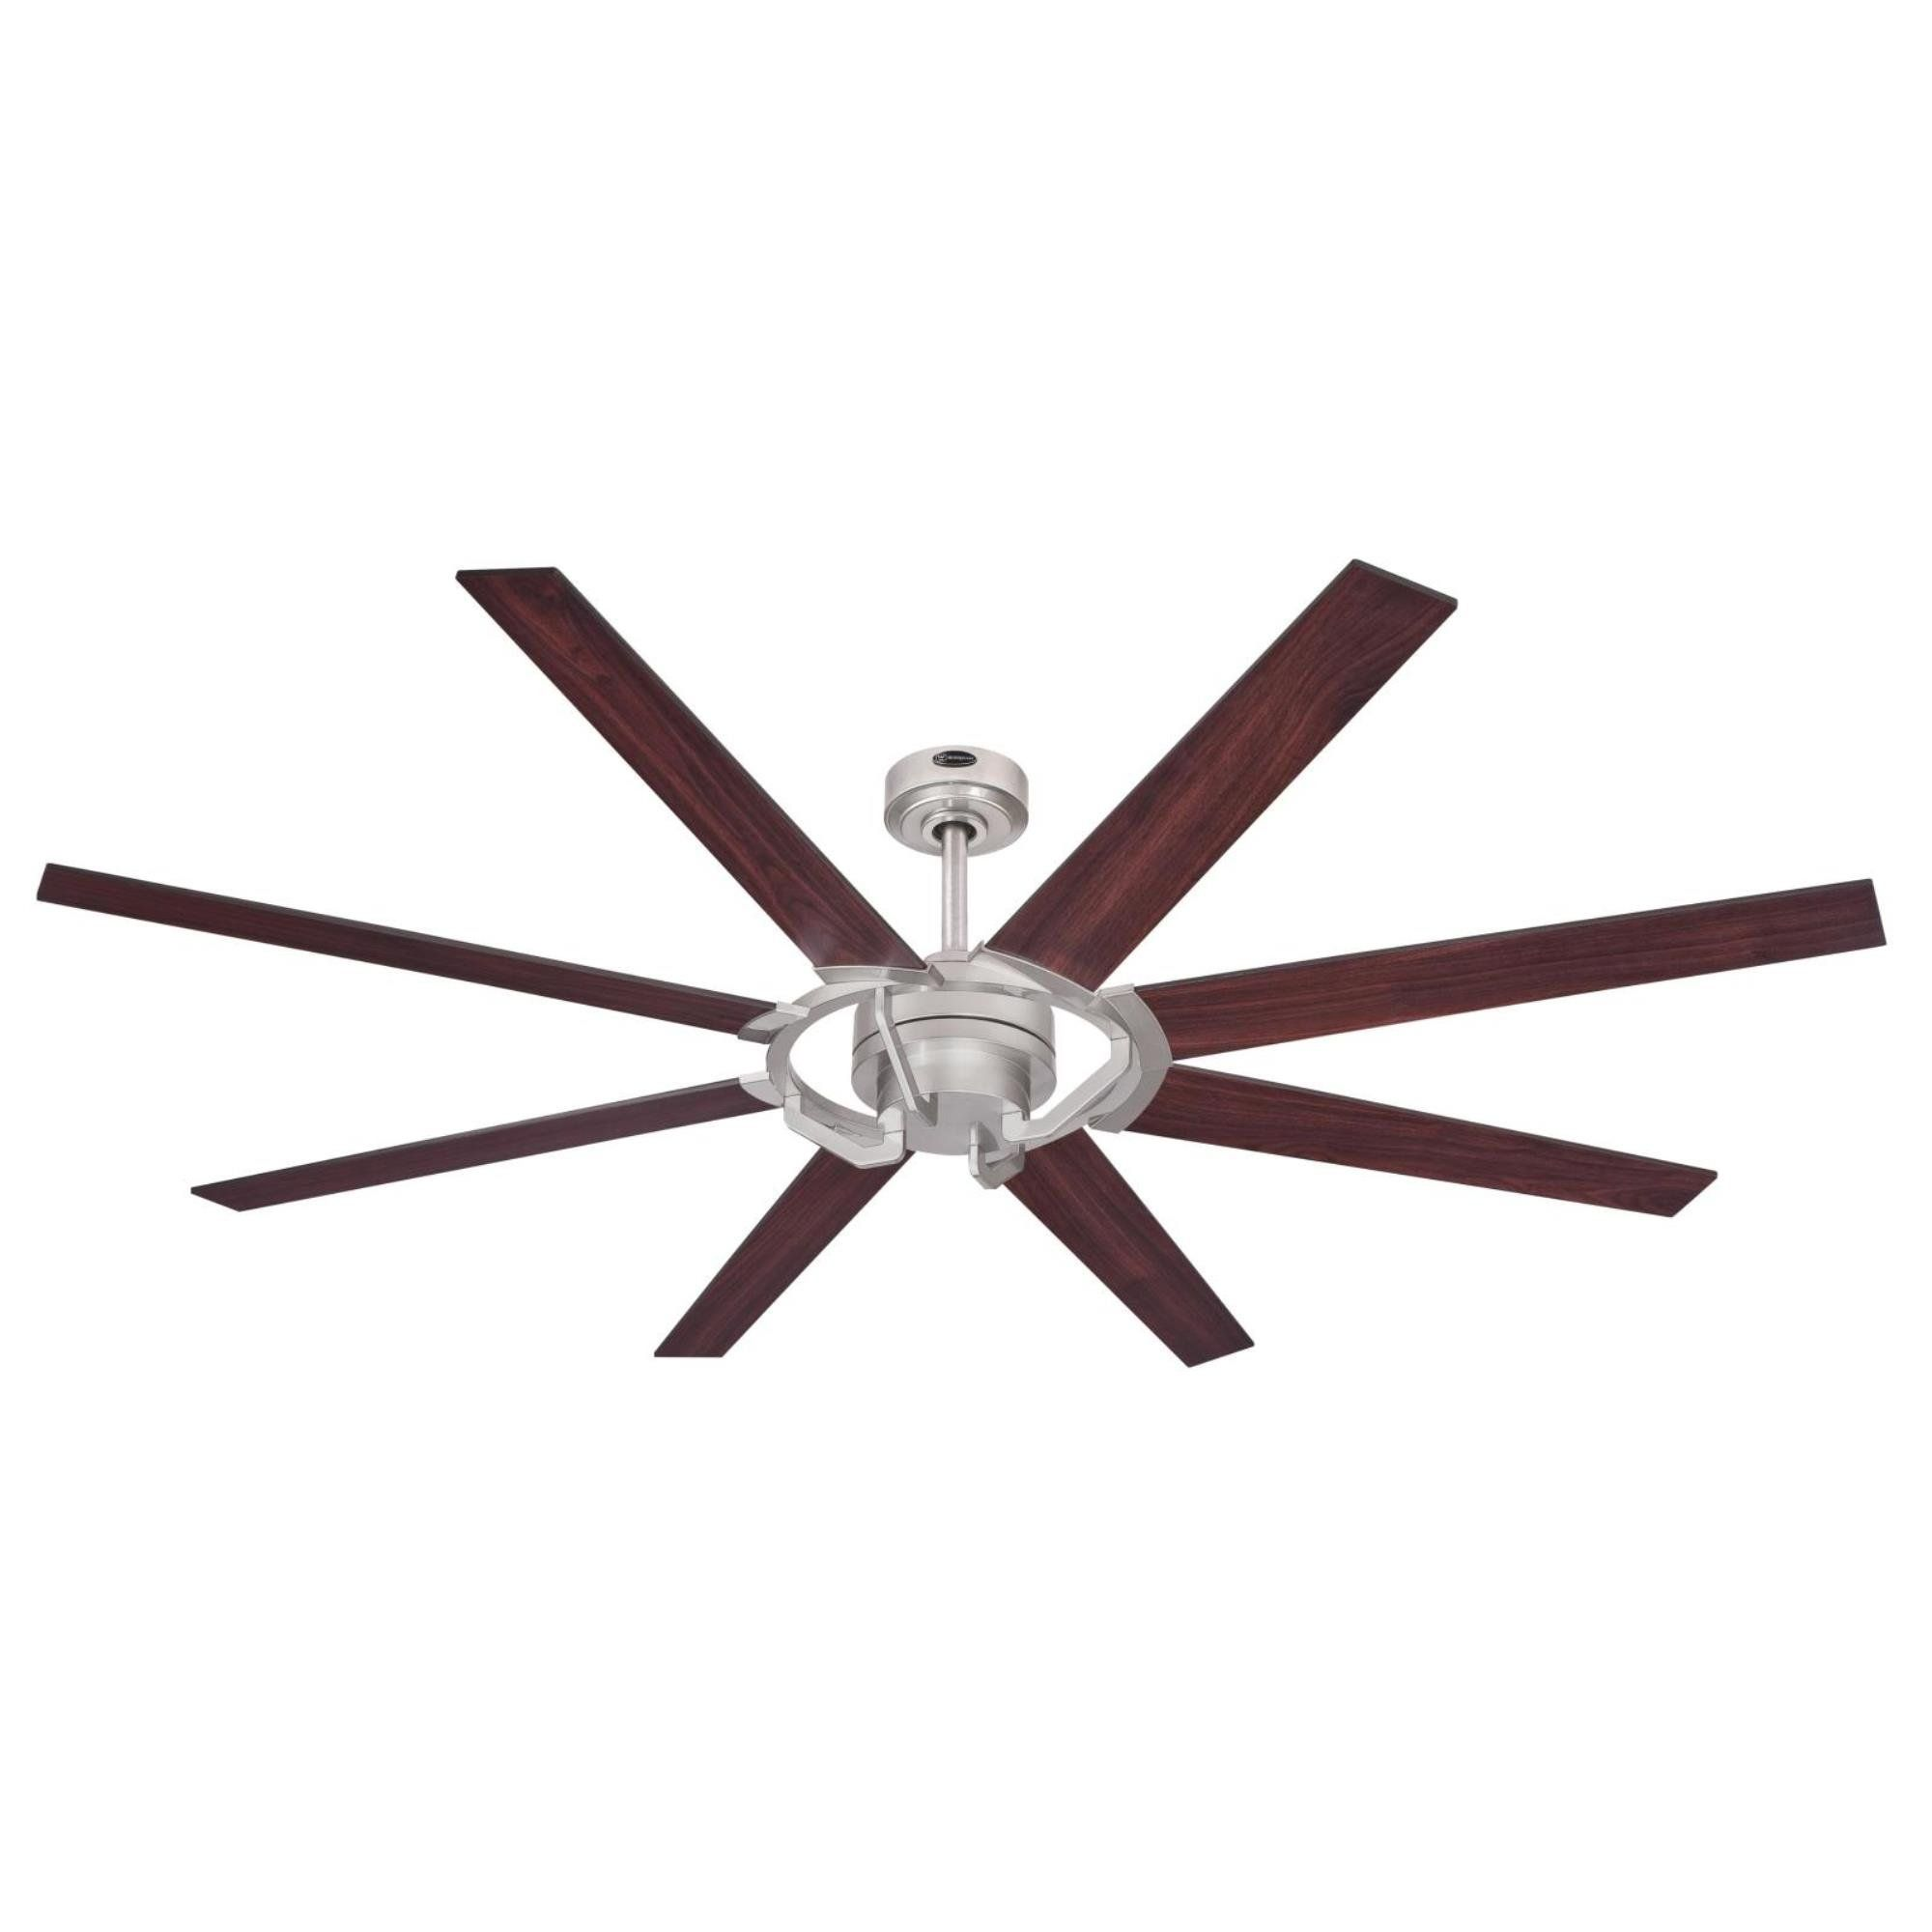 Pin On Ceiling Fans Accessories